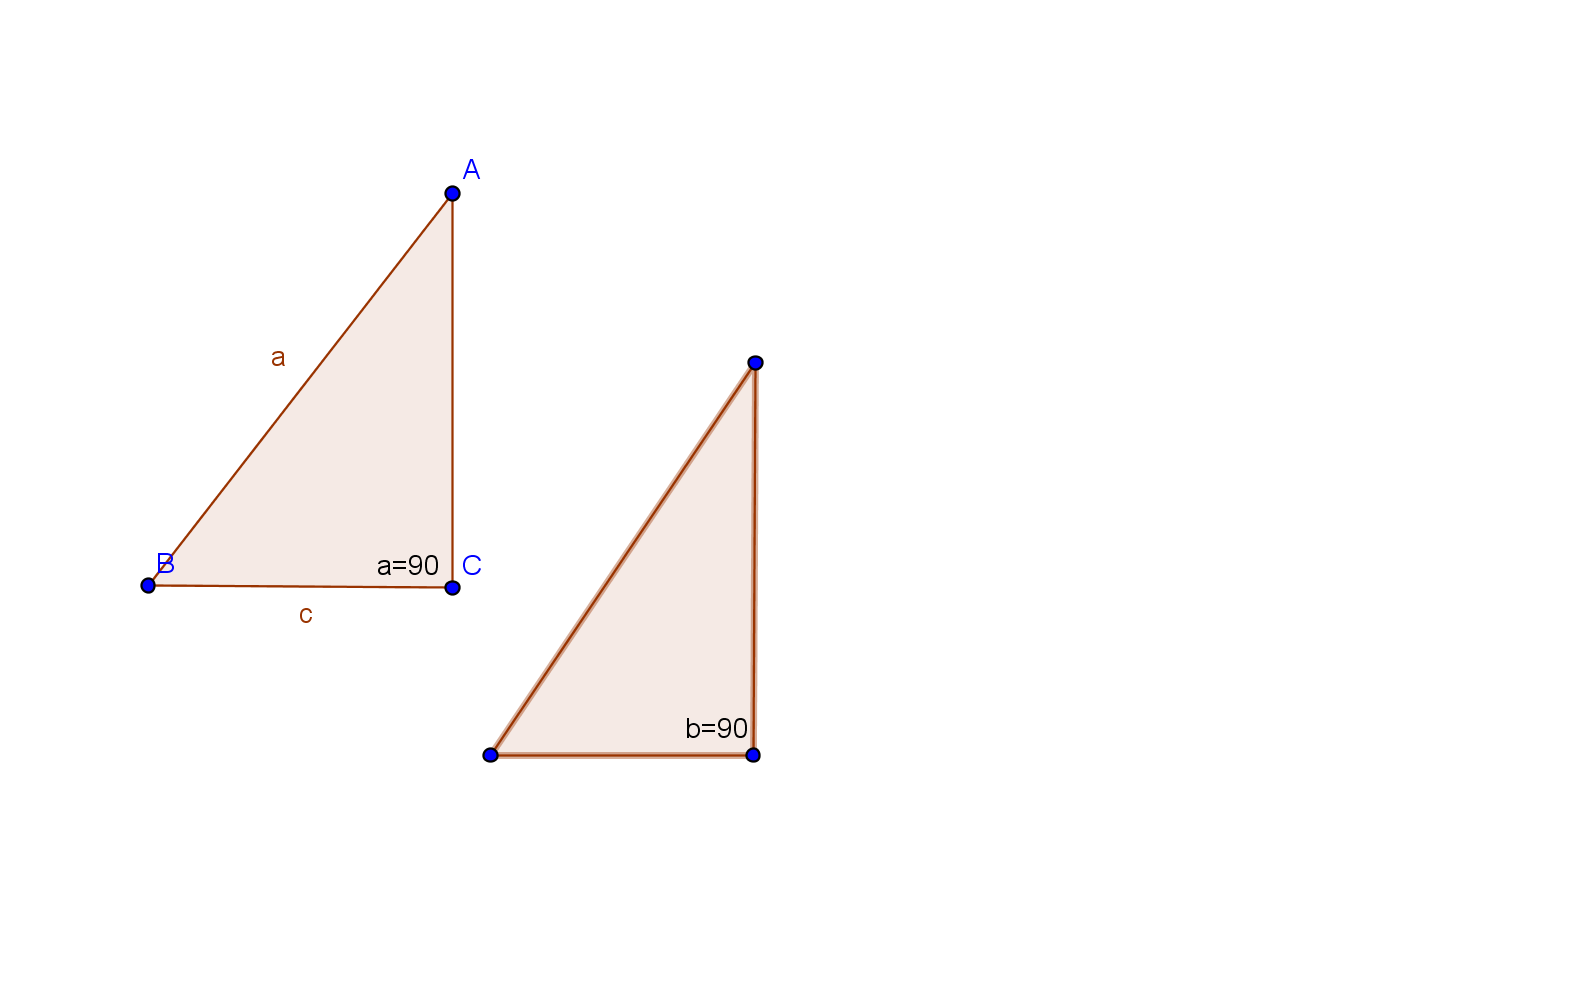 Congruent Triangles In Bridges Amber cannon triangles and